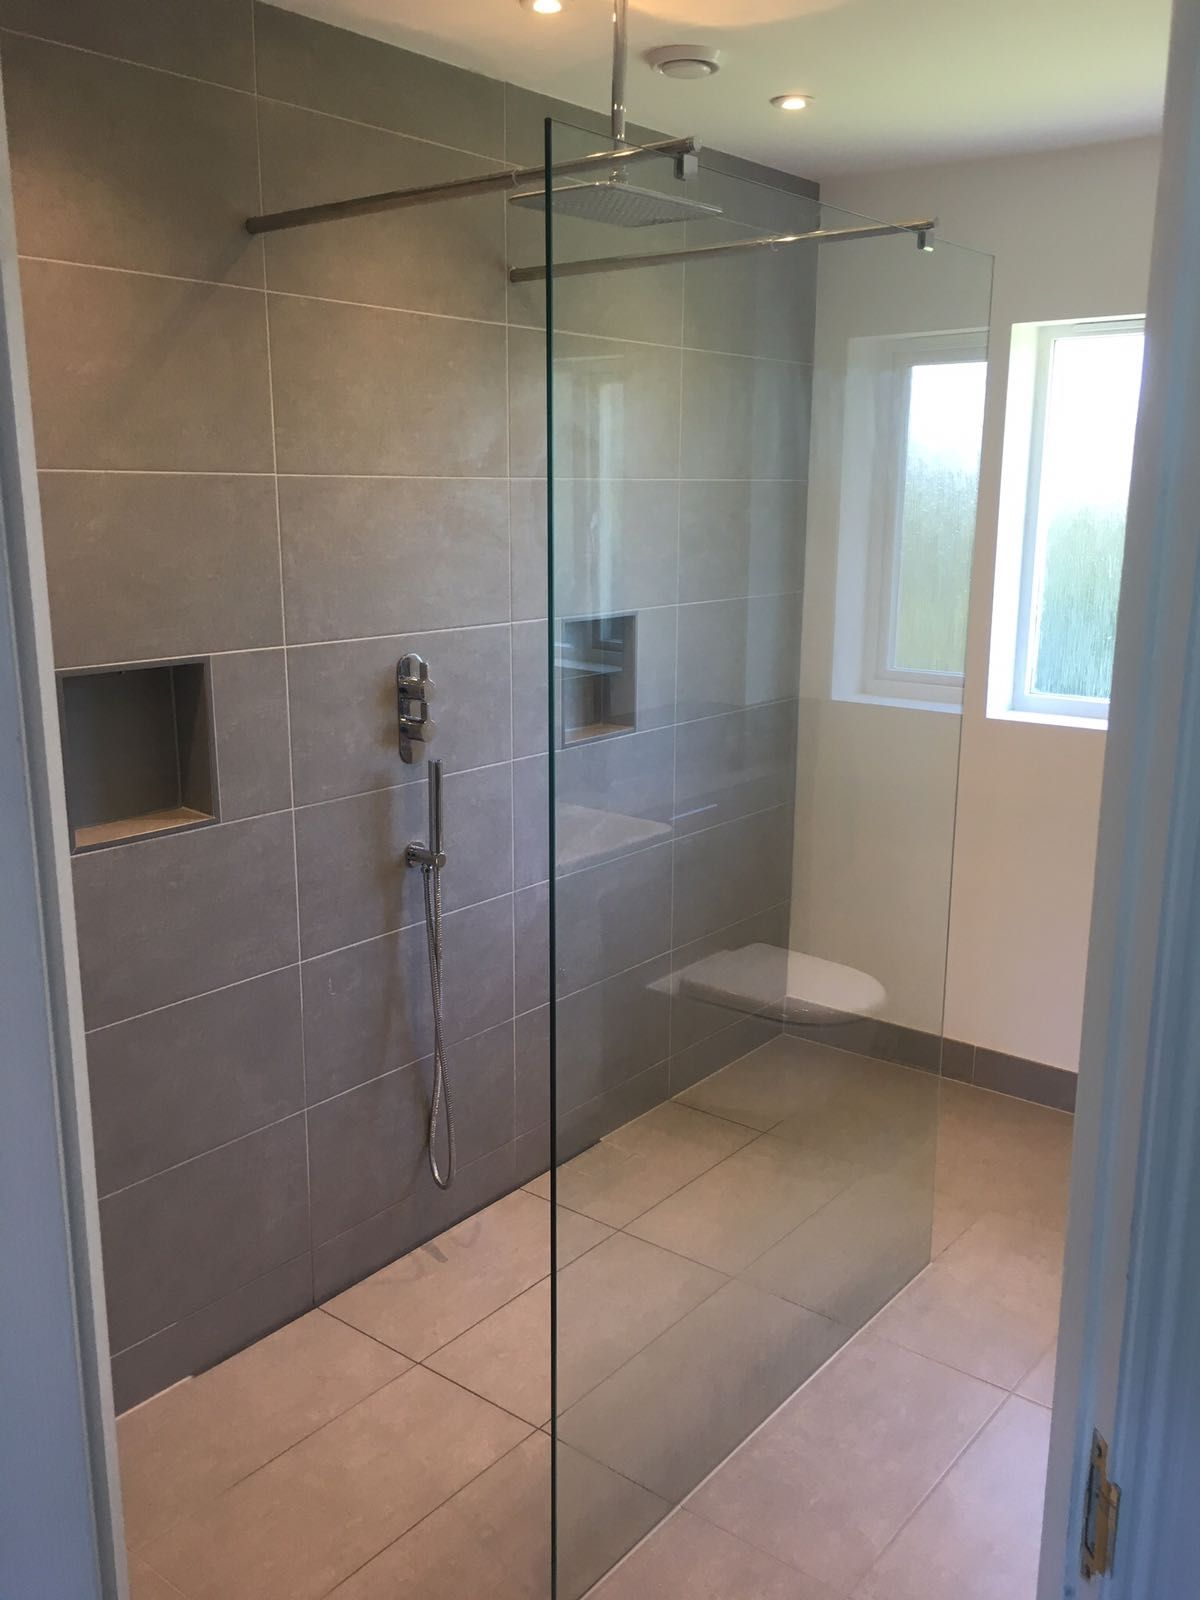 This Walk Through Wetroom Area Was Created With The New Aquatecnic